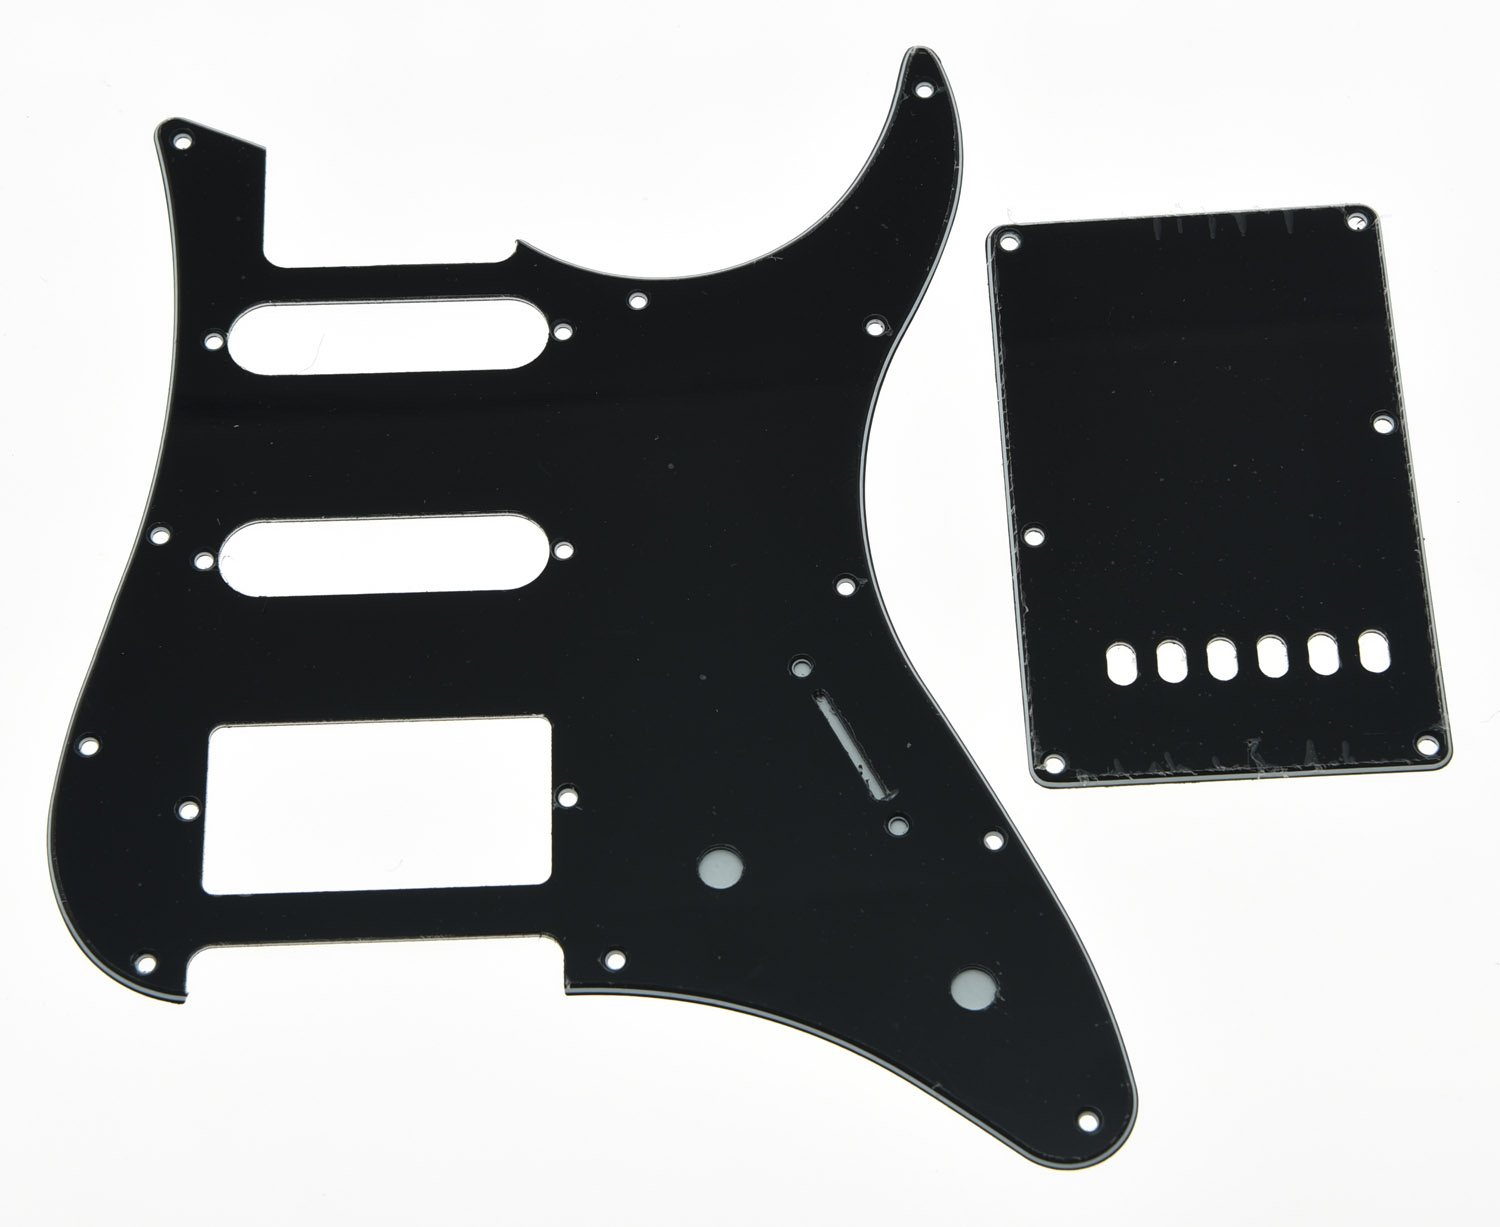 KAISH Black 3 Ply Guitar Pickguard w/ Back Plate and Screws fits Yamaha PACIFICA